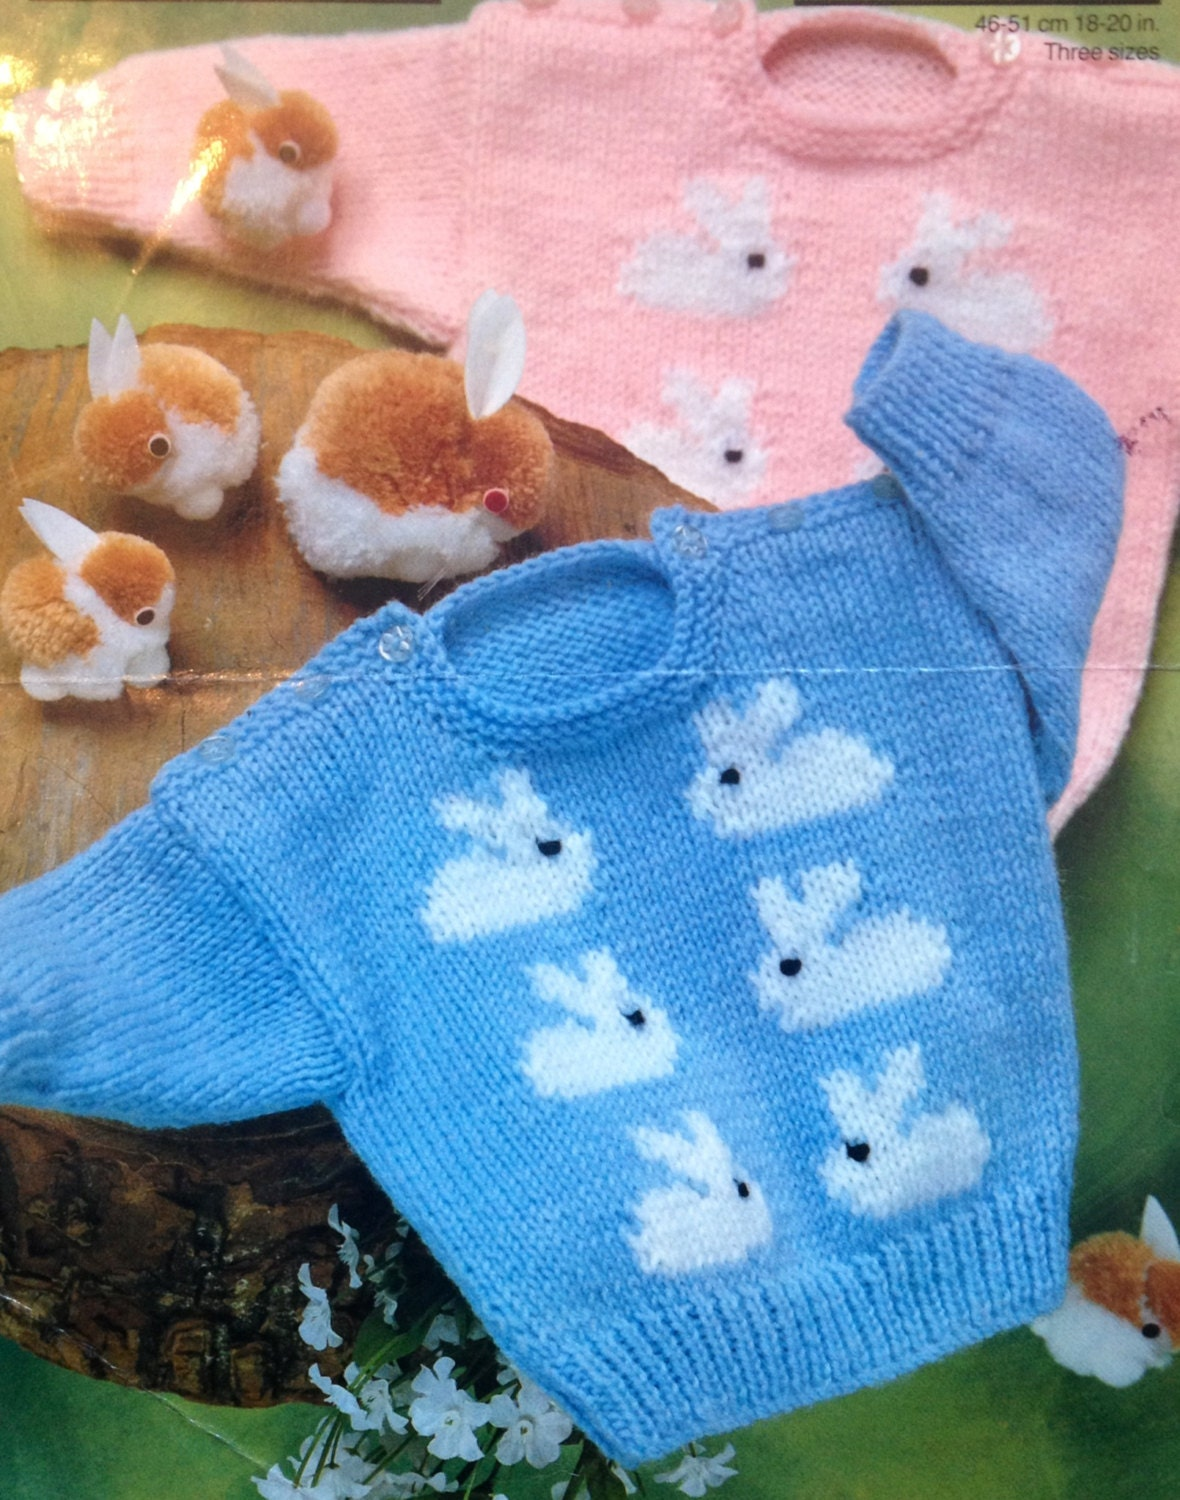 Knitting Patterns For Babies Jumpers : baby knitting pattern cute bunny rabbit jumpers in size 18-20